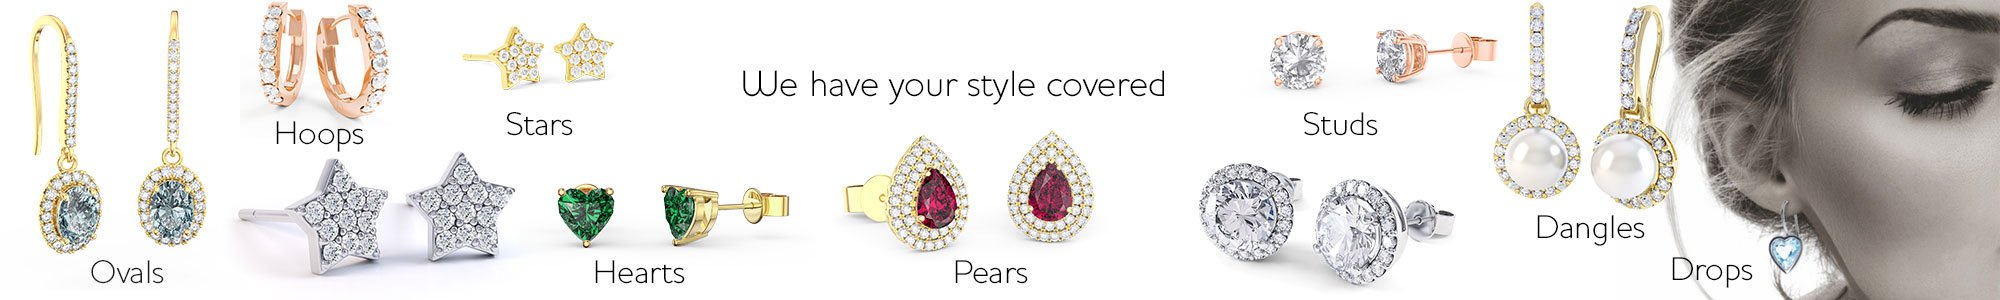 Shop Earrings for your Bridesmaids by Jian London. Free US Delivery